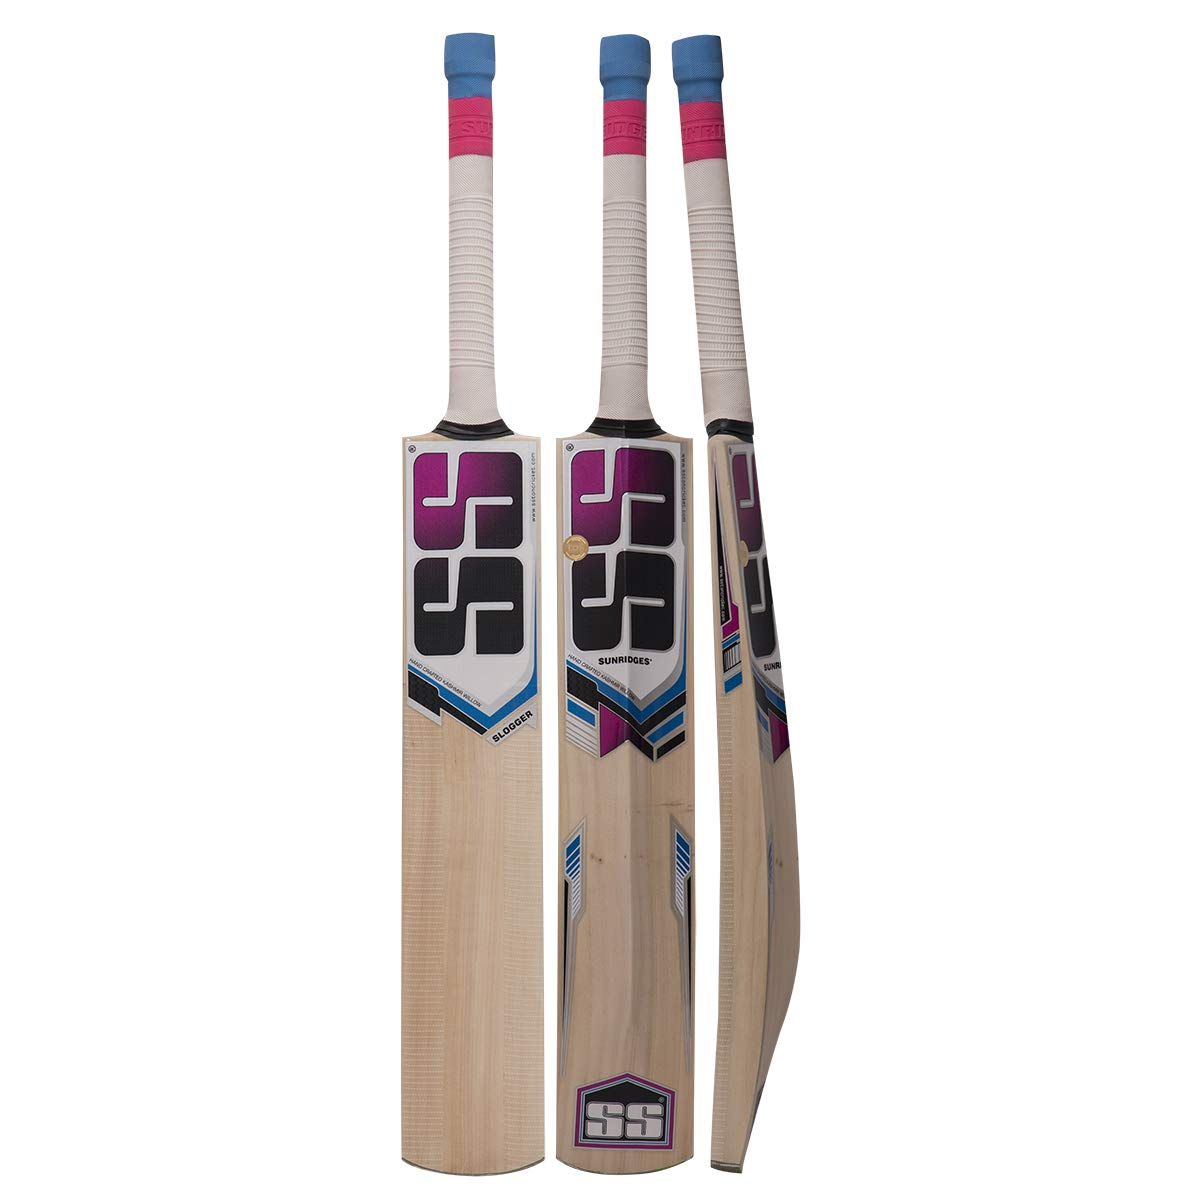 SS Slogger Cricket Bat - Kashmir Willow